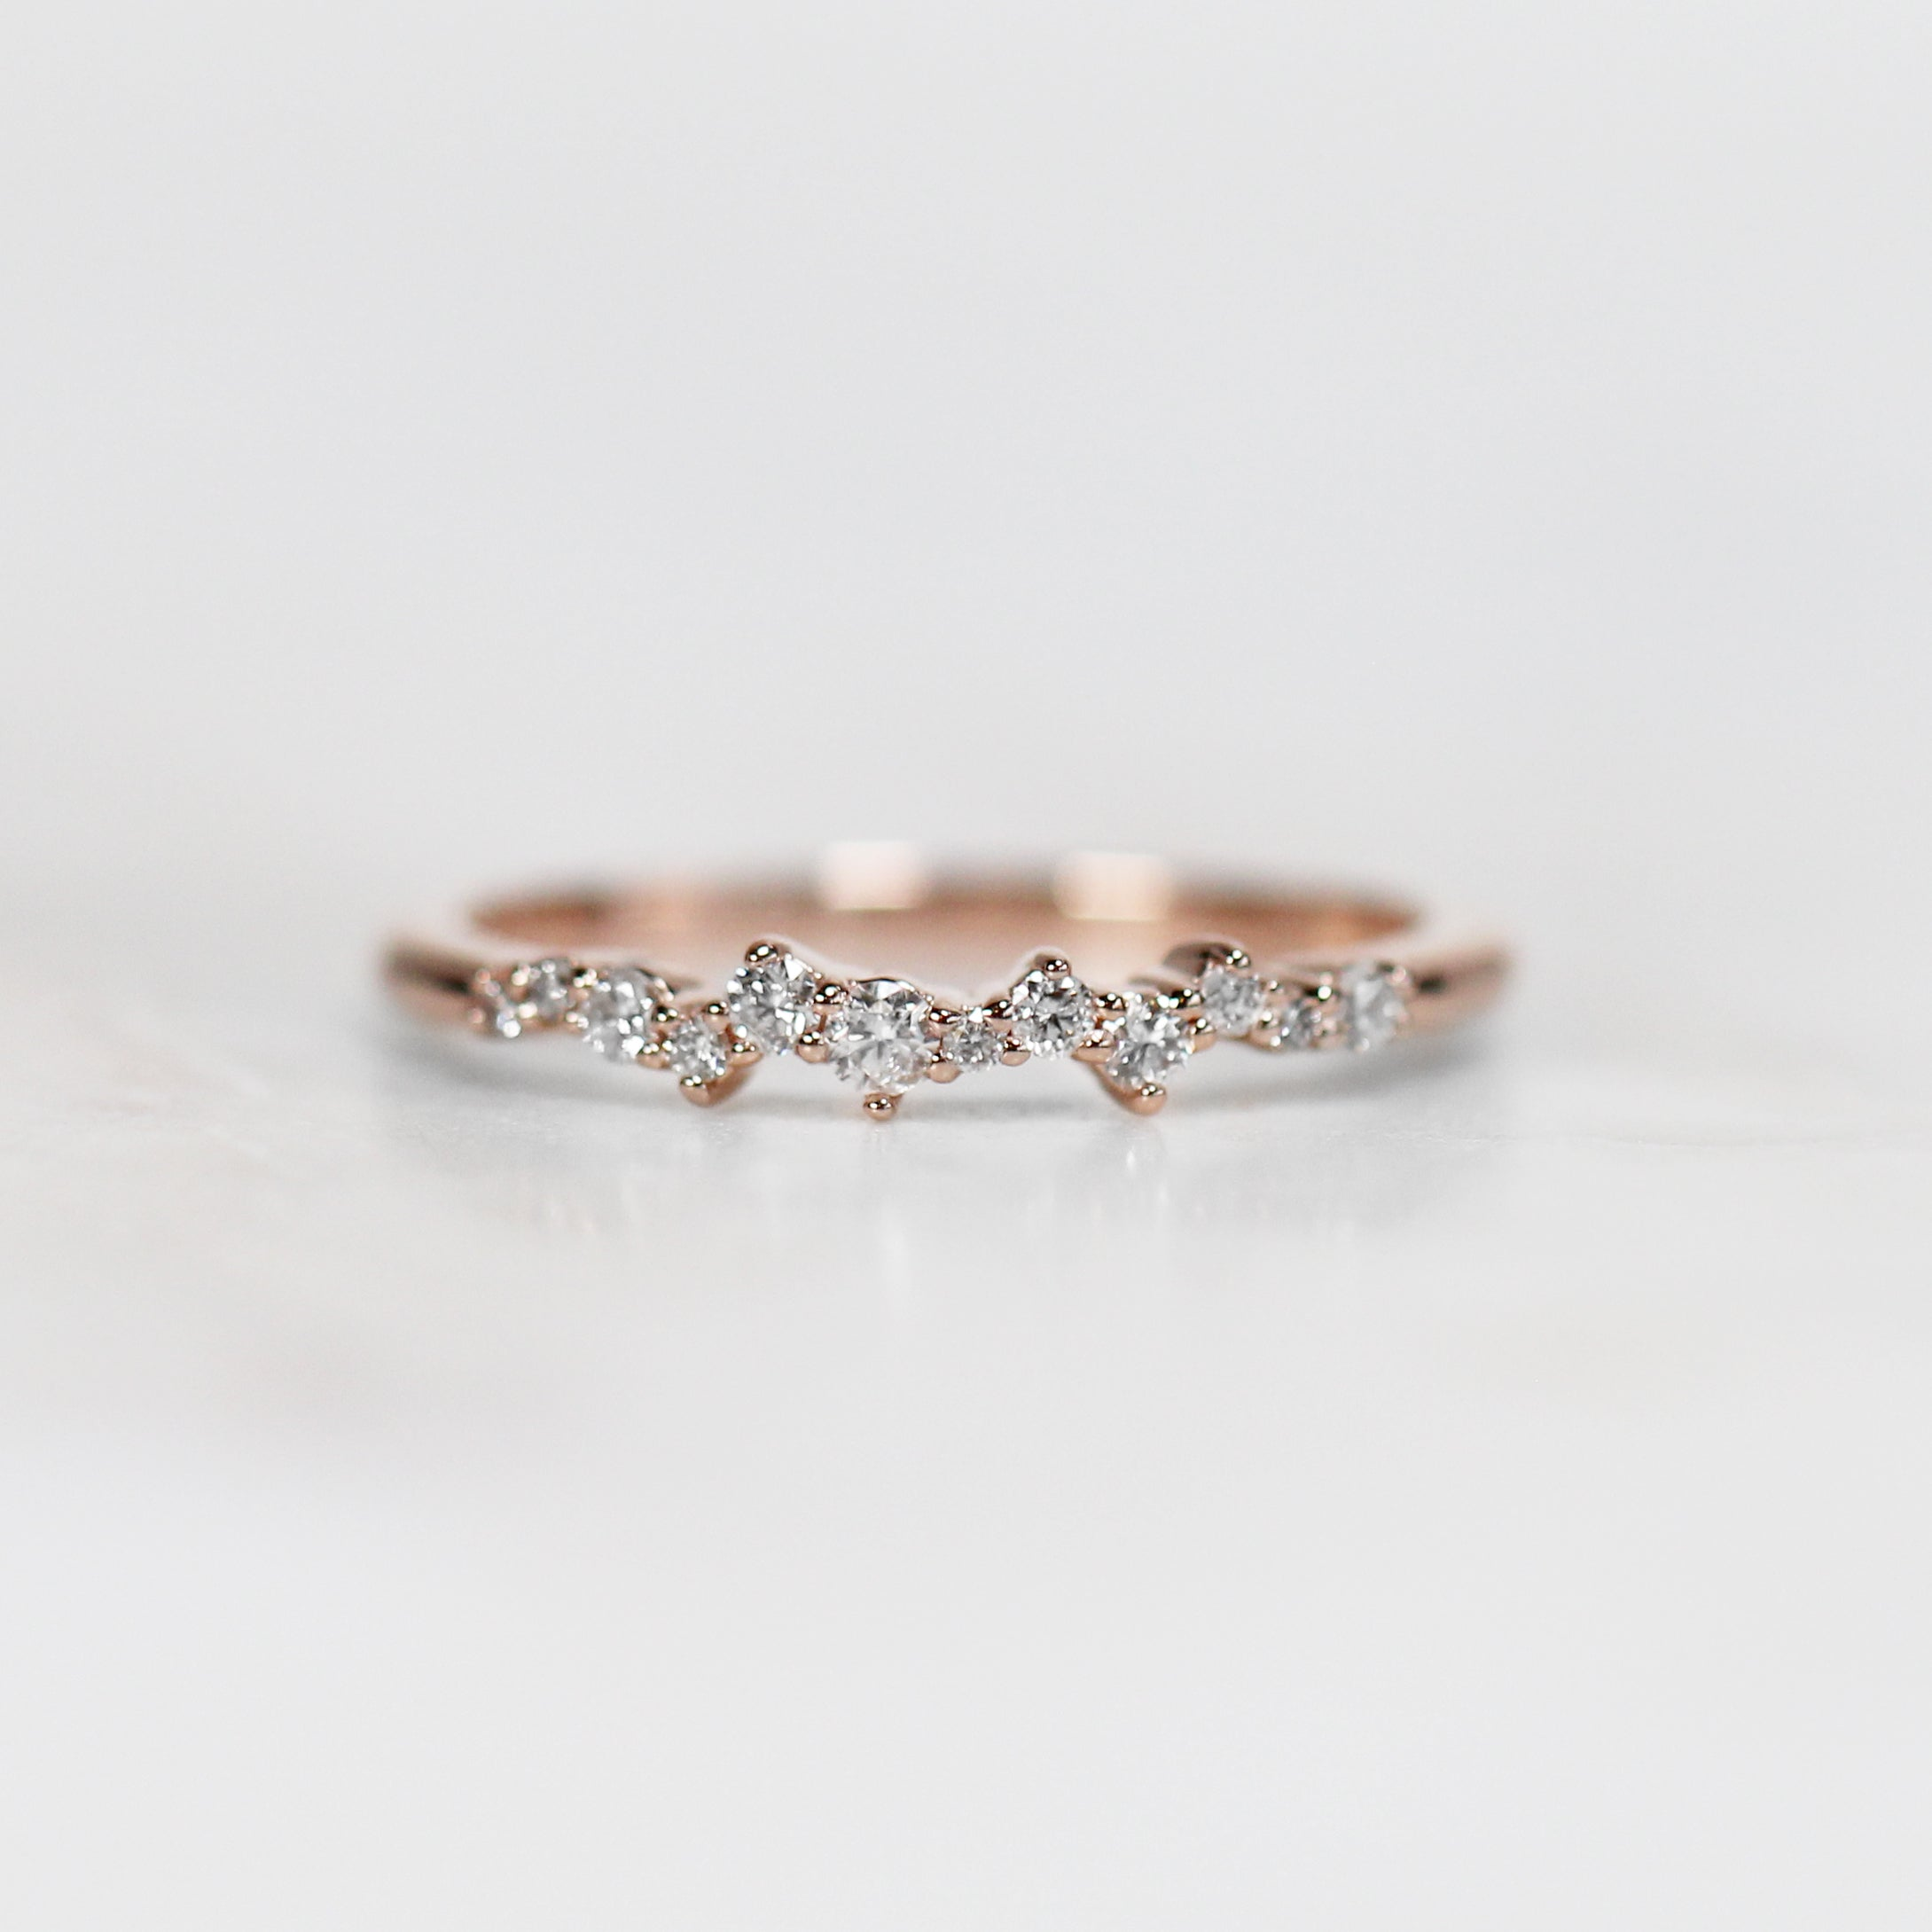 Oaklynn Diamond Wedding Stacking Cluster Band - Midwinter Co. Alternative Bridal Rings and Modern Fine Jewelry